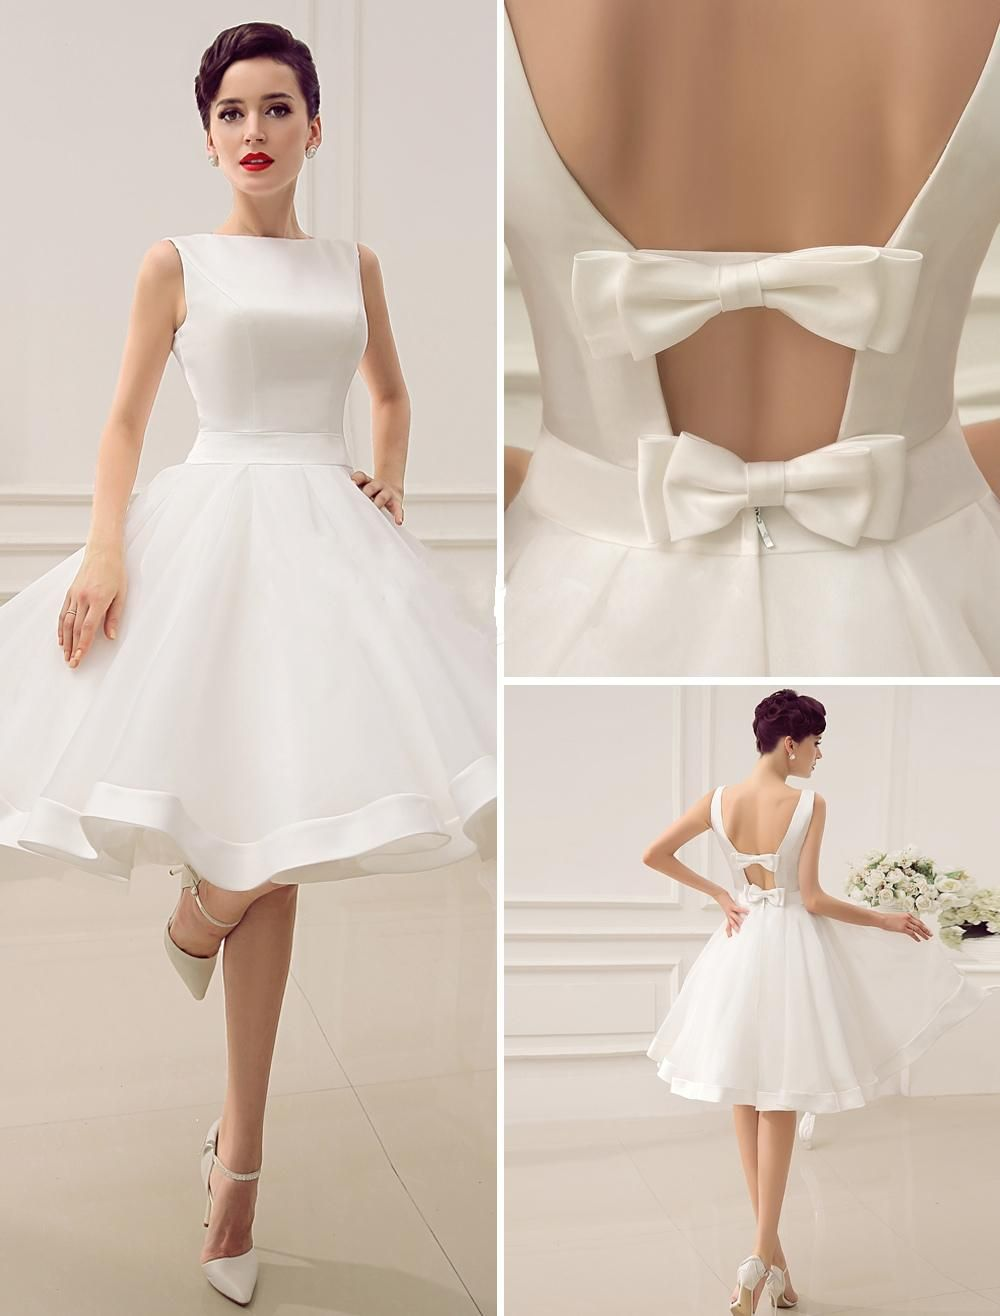 Cheap 2015 Short Wedding Dresses Vintage Bateau Neckline Deep V ...